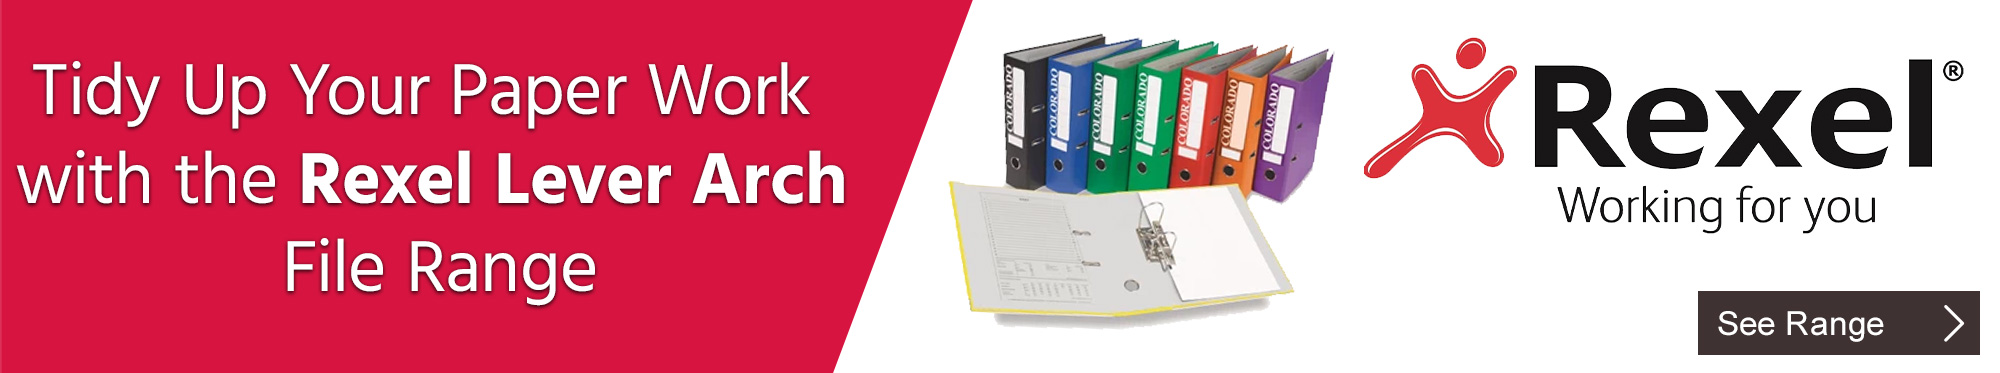 Tidy Up Your Paper Work with the Rexel Lever Arch File Range